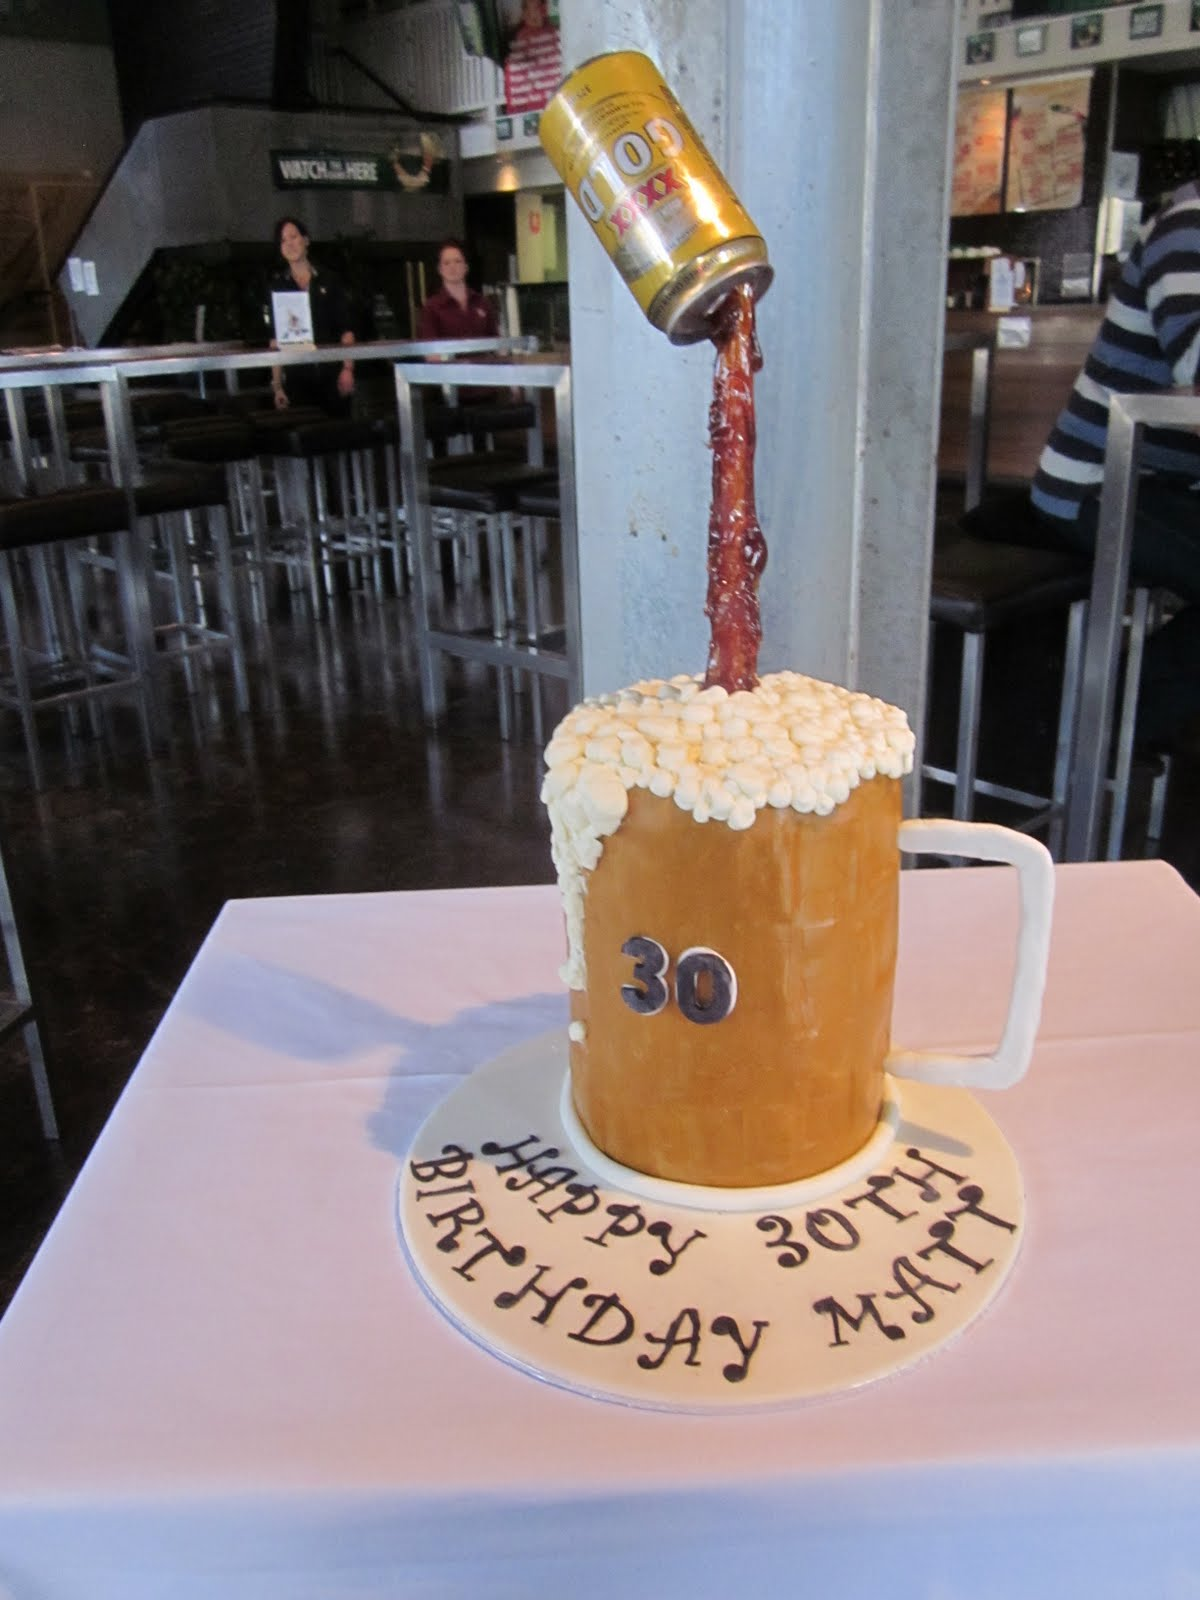 Deb S Cakes And Cupcakes Beer Stein 30th Birthday Cake